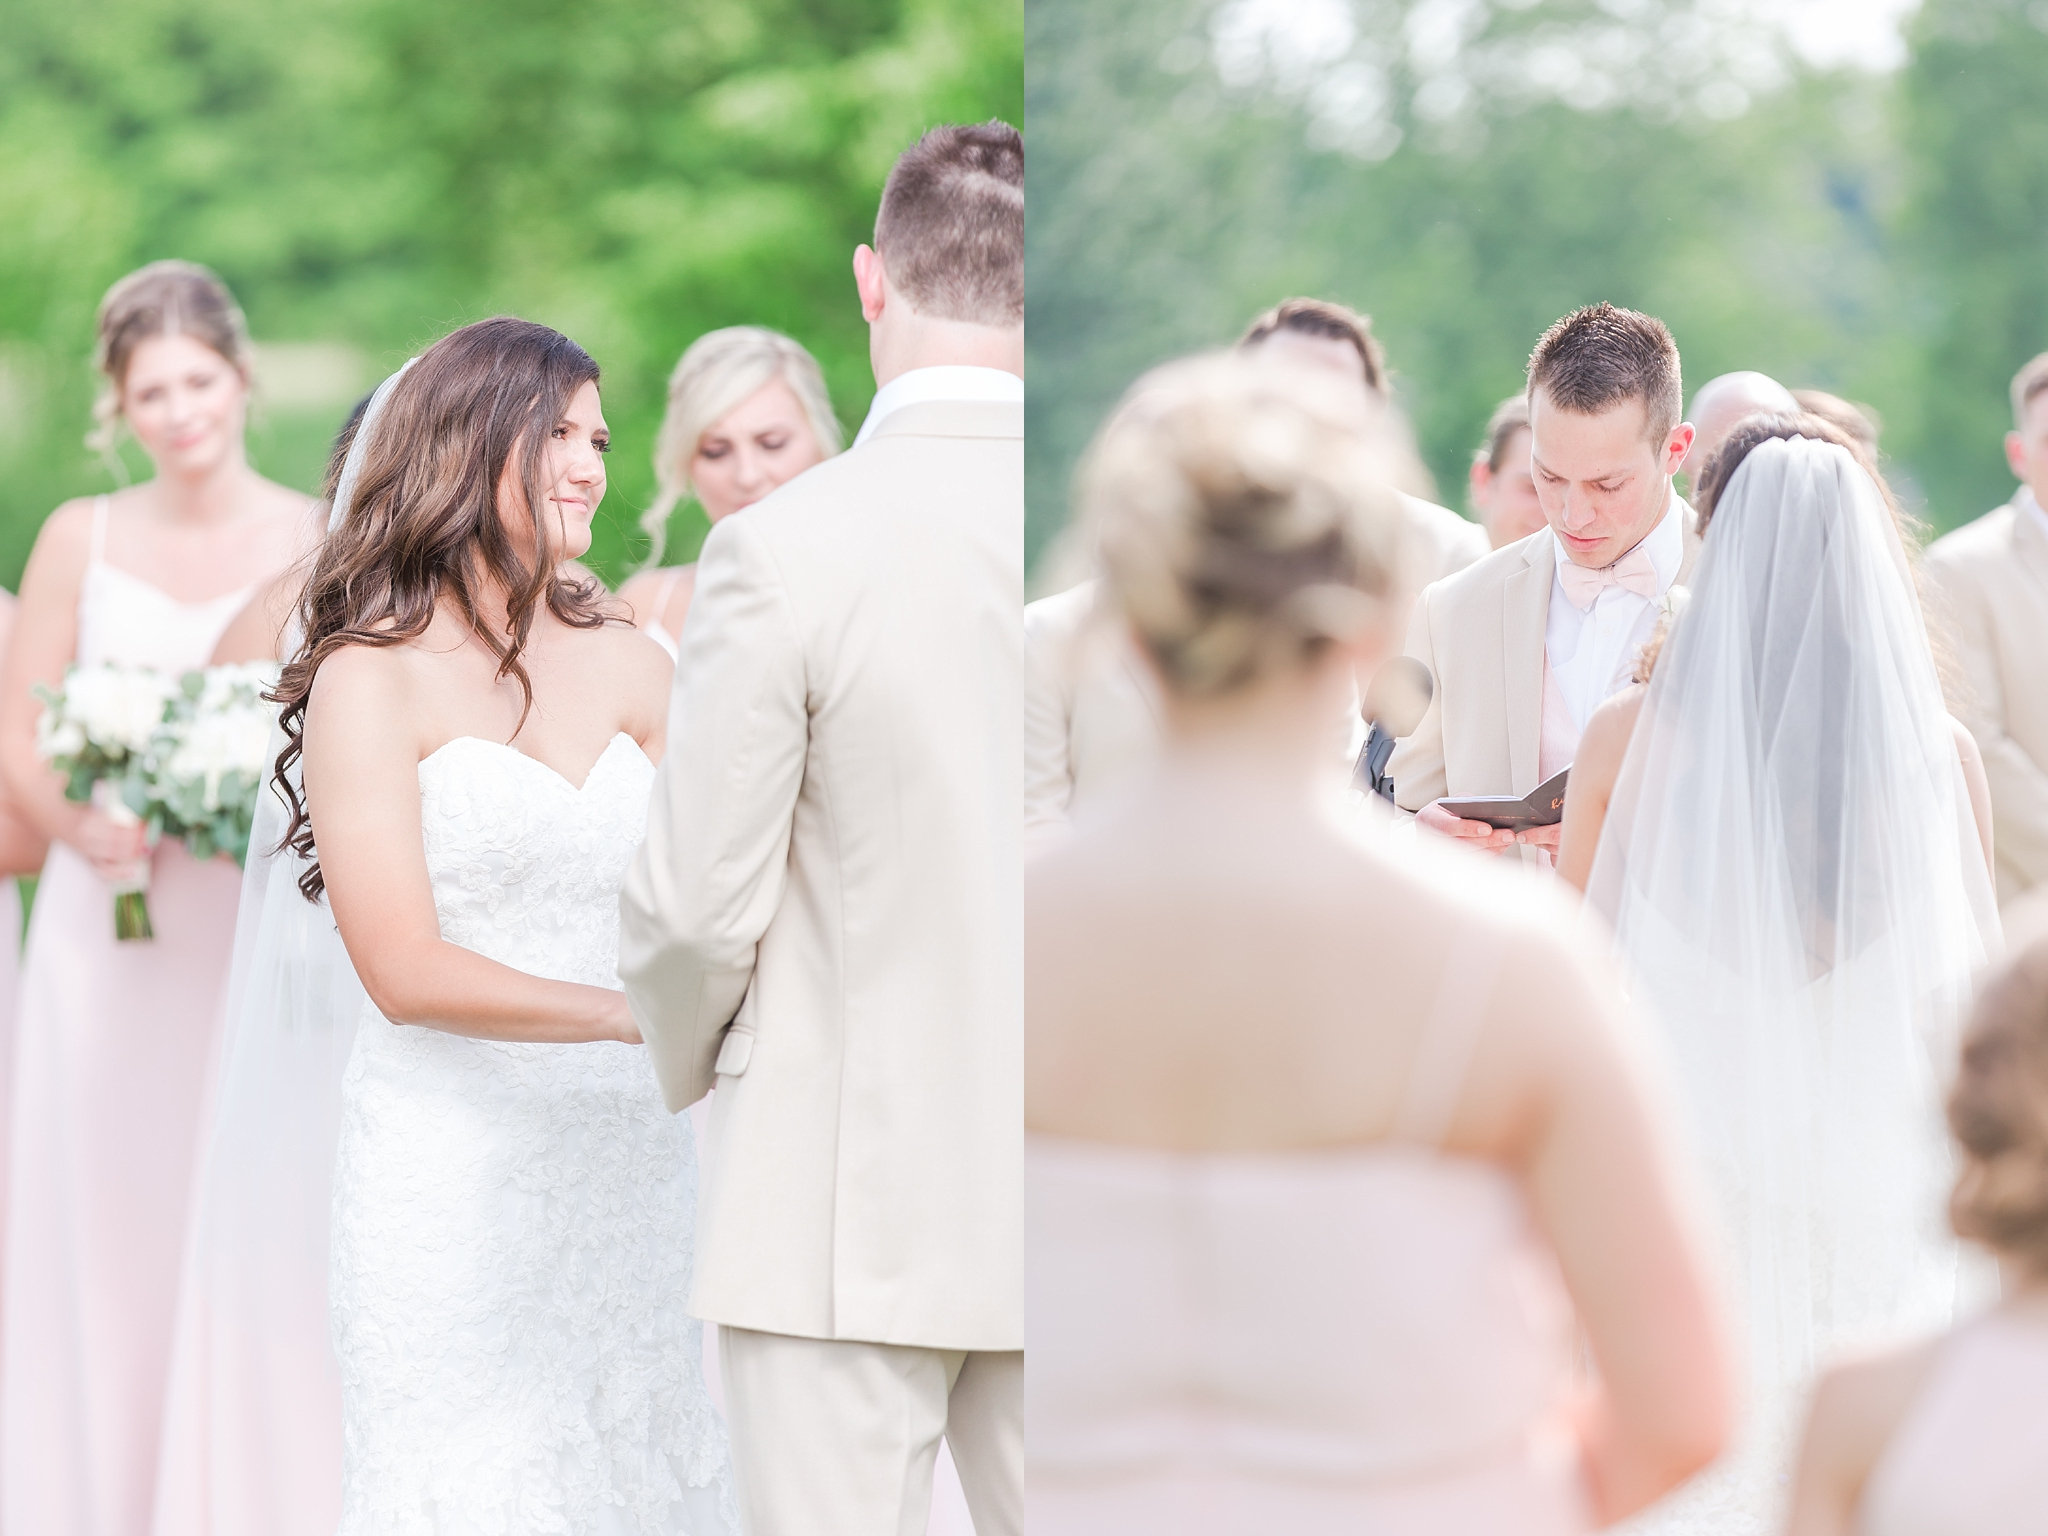 candid-timeless-wedding-photos-at-the-captains-club-in-grand-blanc-michigan-by-courtney-carolyn-photography_0045.jpg